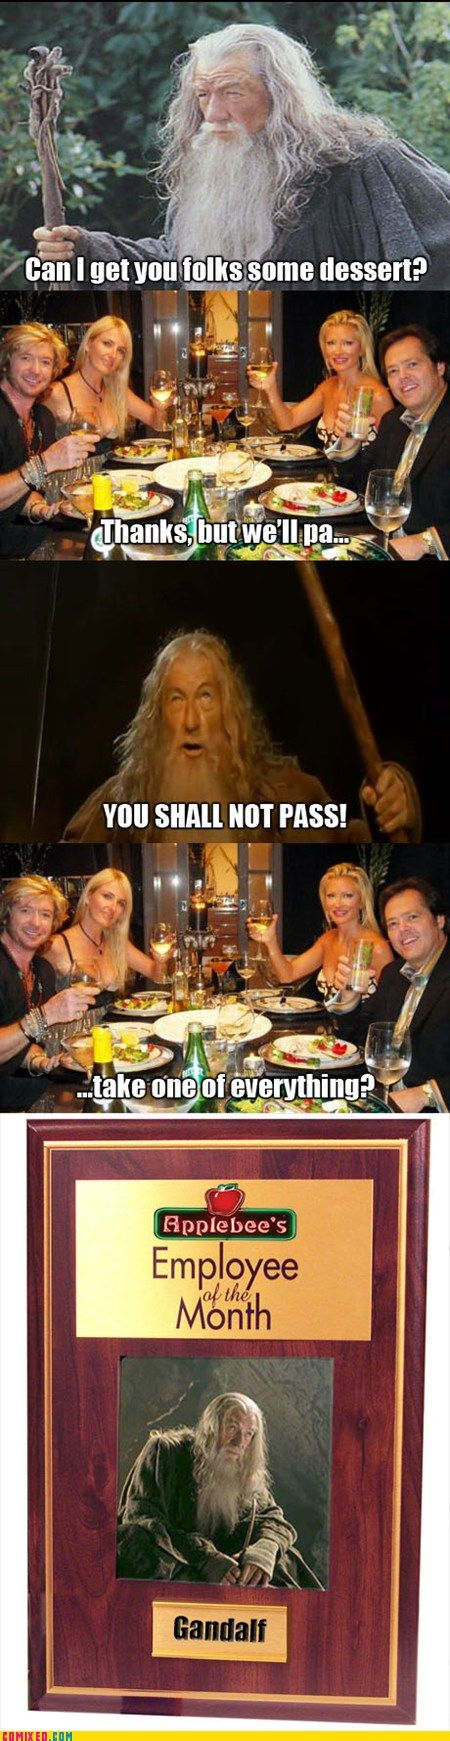 I love it!: Funny Pictures, Giggl, Funny Stuff, Humor, Lord, Movie Line, Funny Memes, Gandalf, Server Life